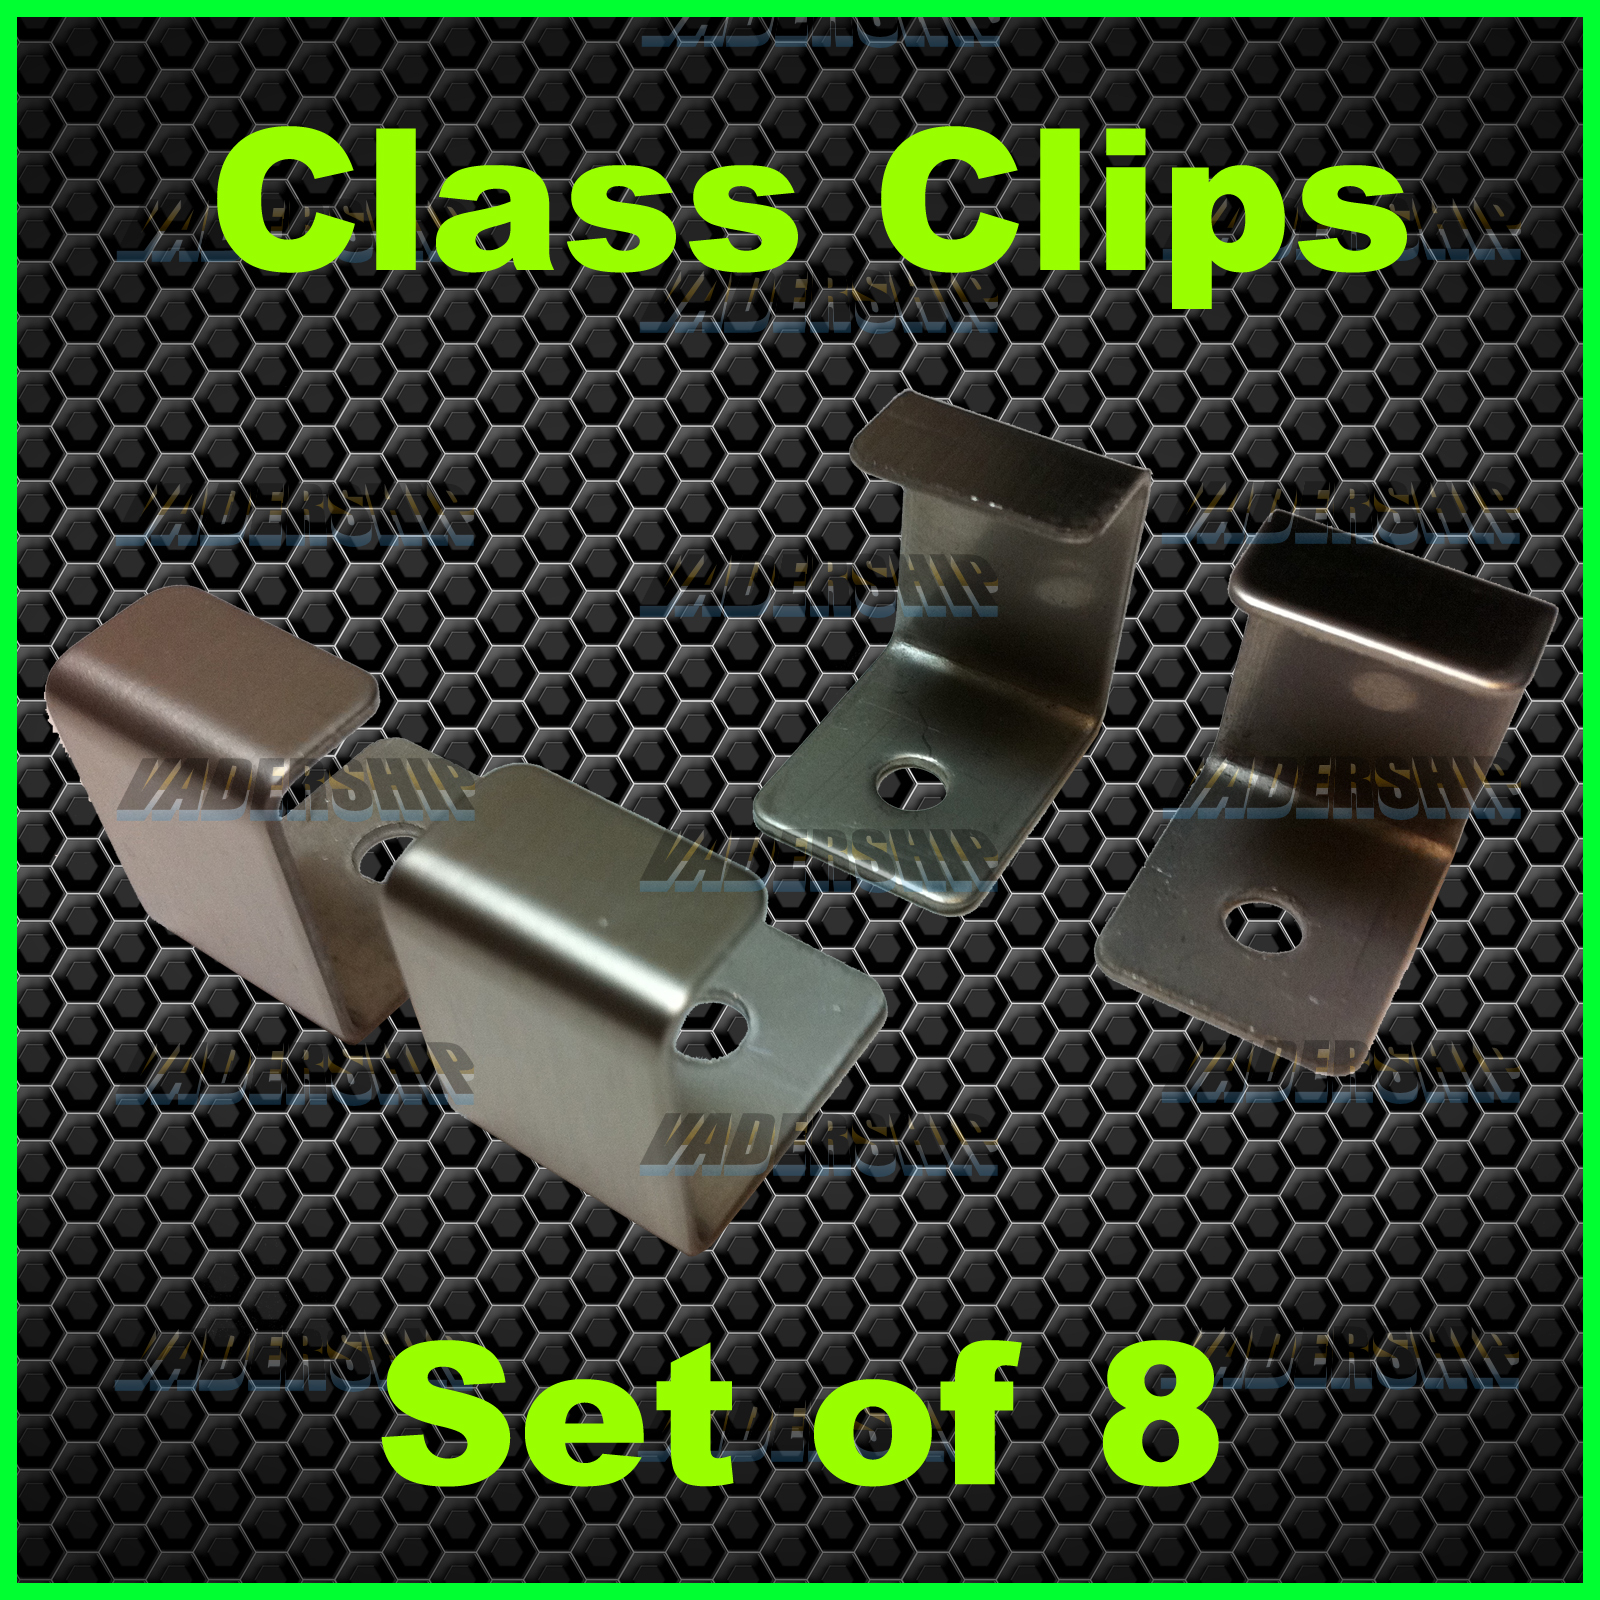 Top clips images 43